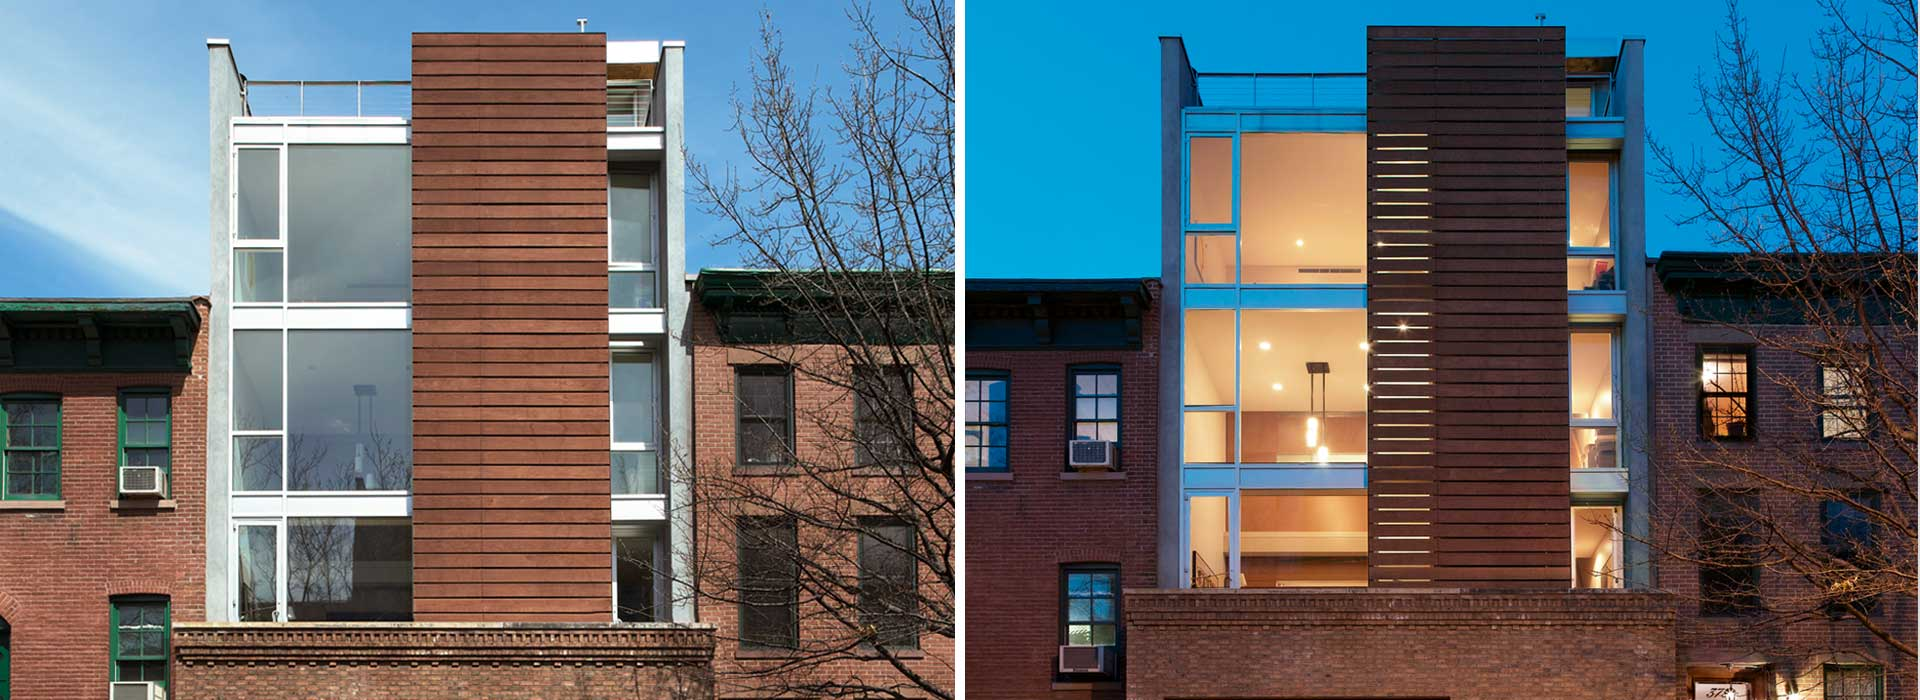 Pacific Street by Bergen St. Studio - Architecture Firm, Brooklyn, NY